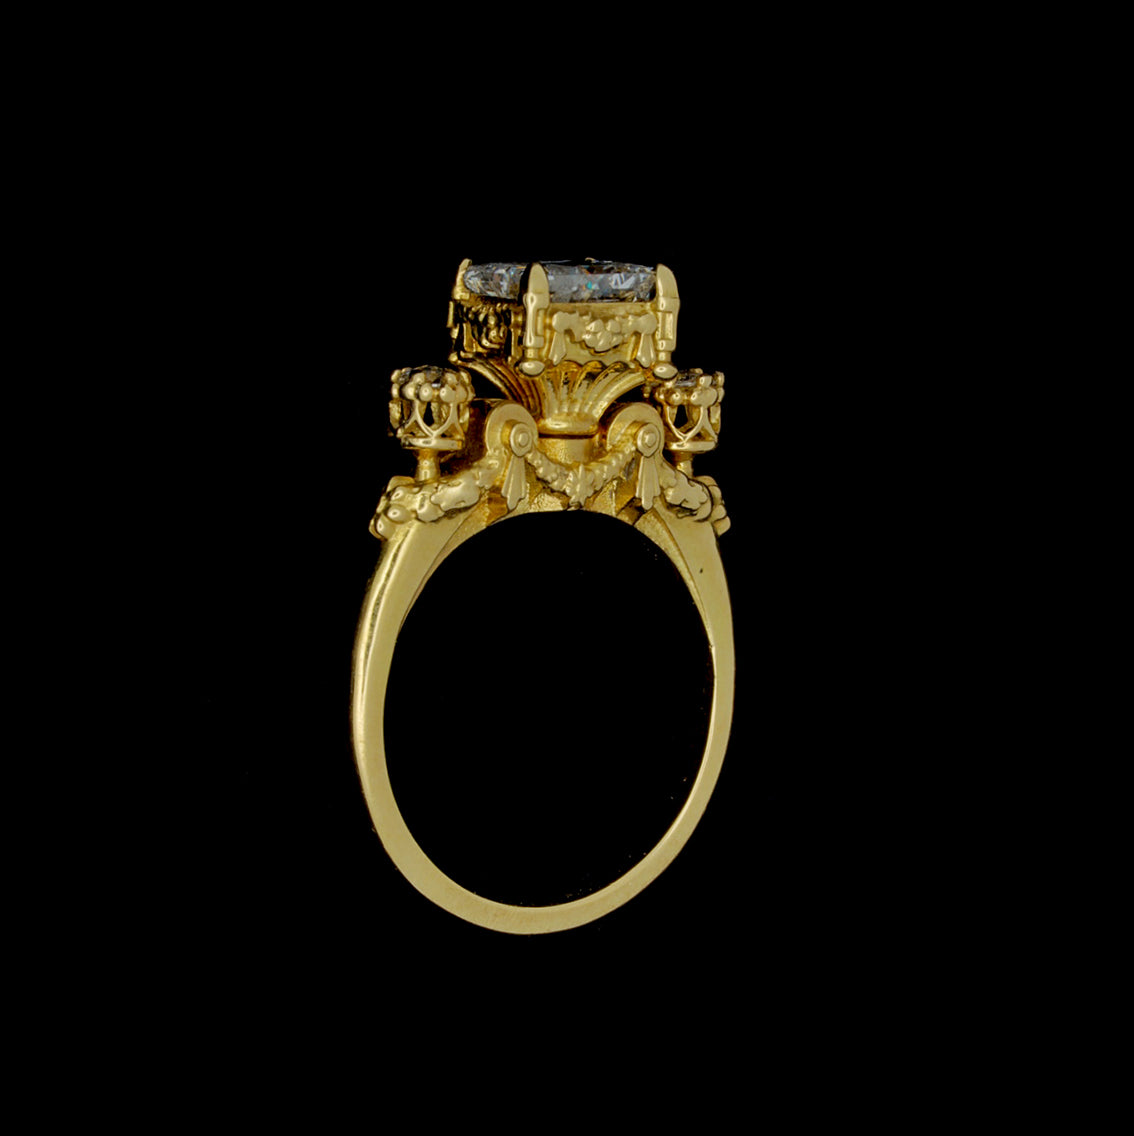 HEAVENLY INFATUATION RING